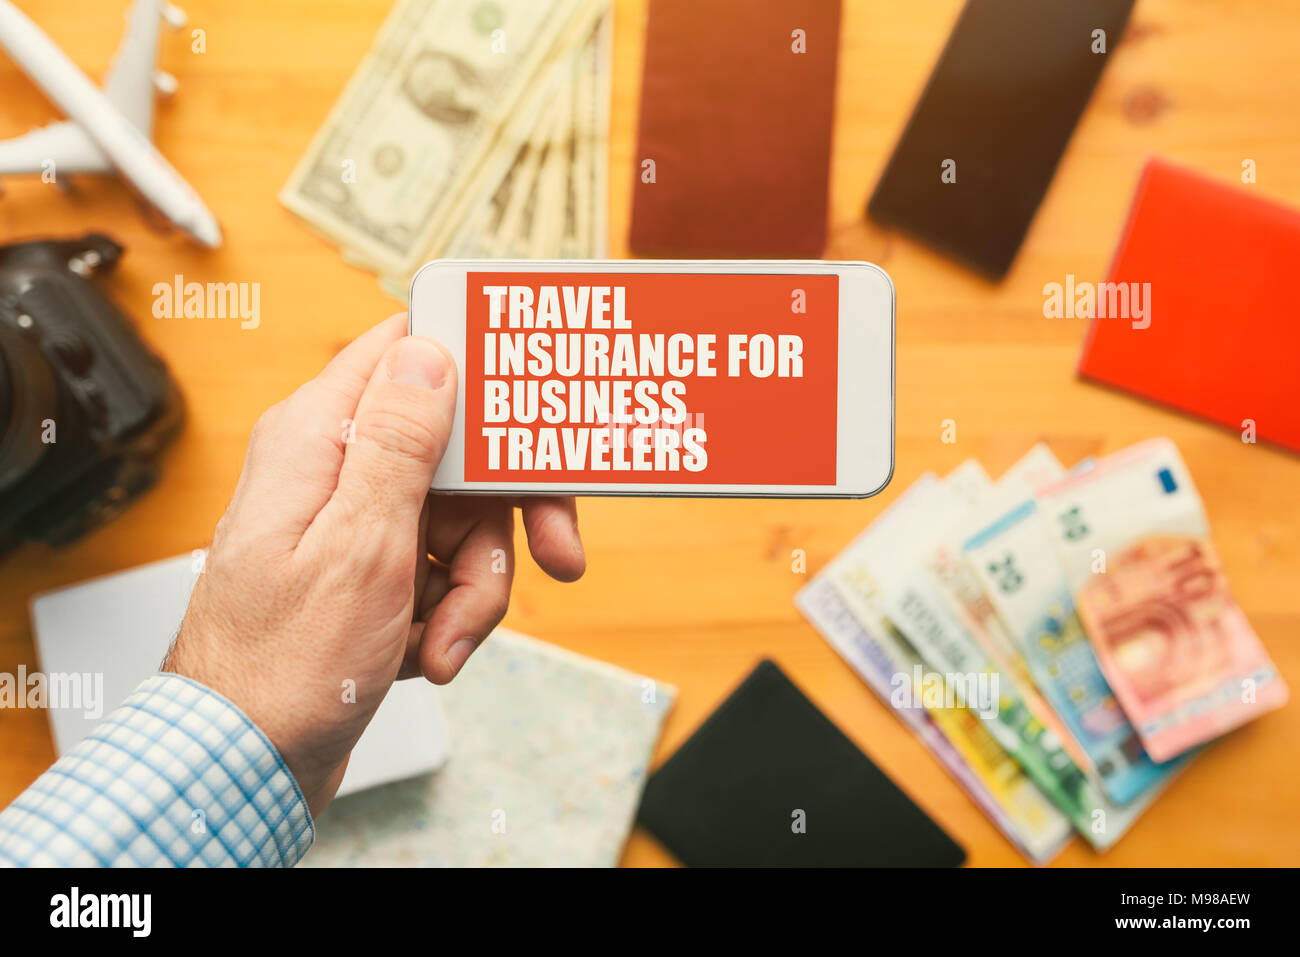 Travel insurance for business travelers online mobile phone app. Man holding smartphone with mock up application screen related to holiday vacation jo - Stock Image